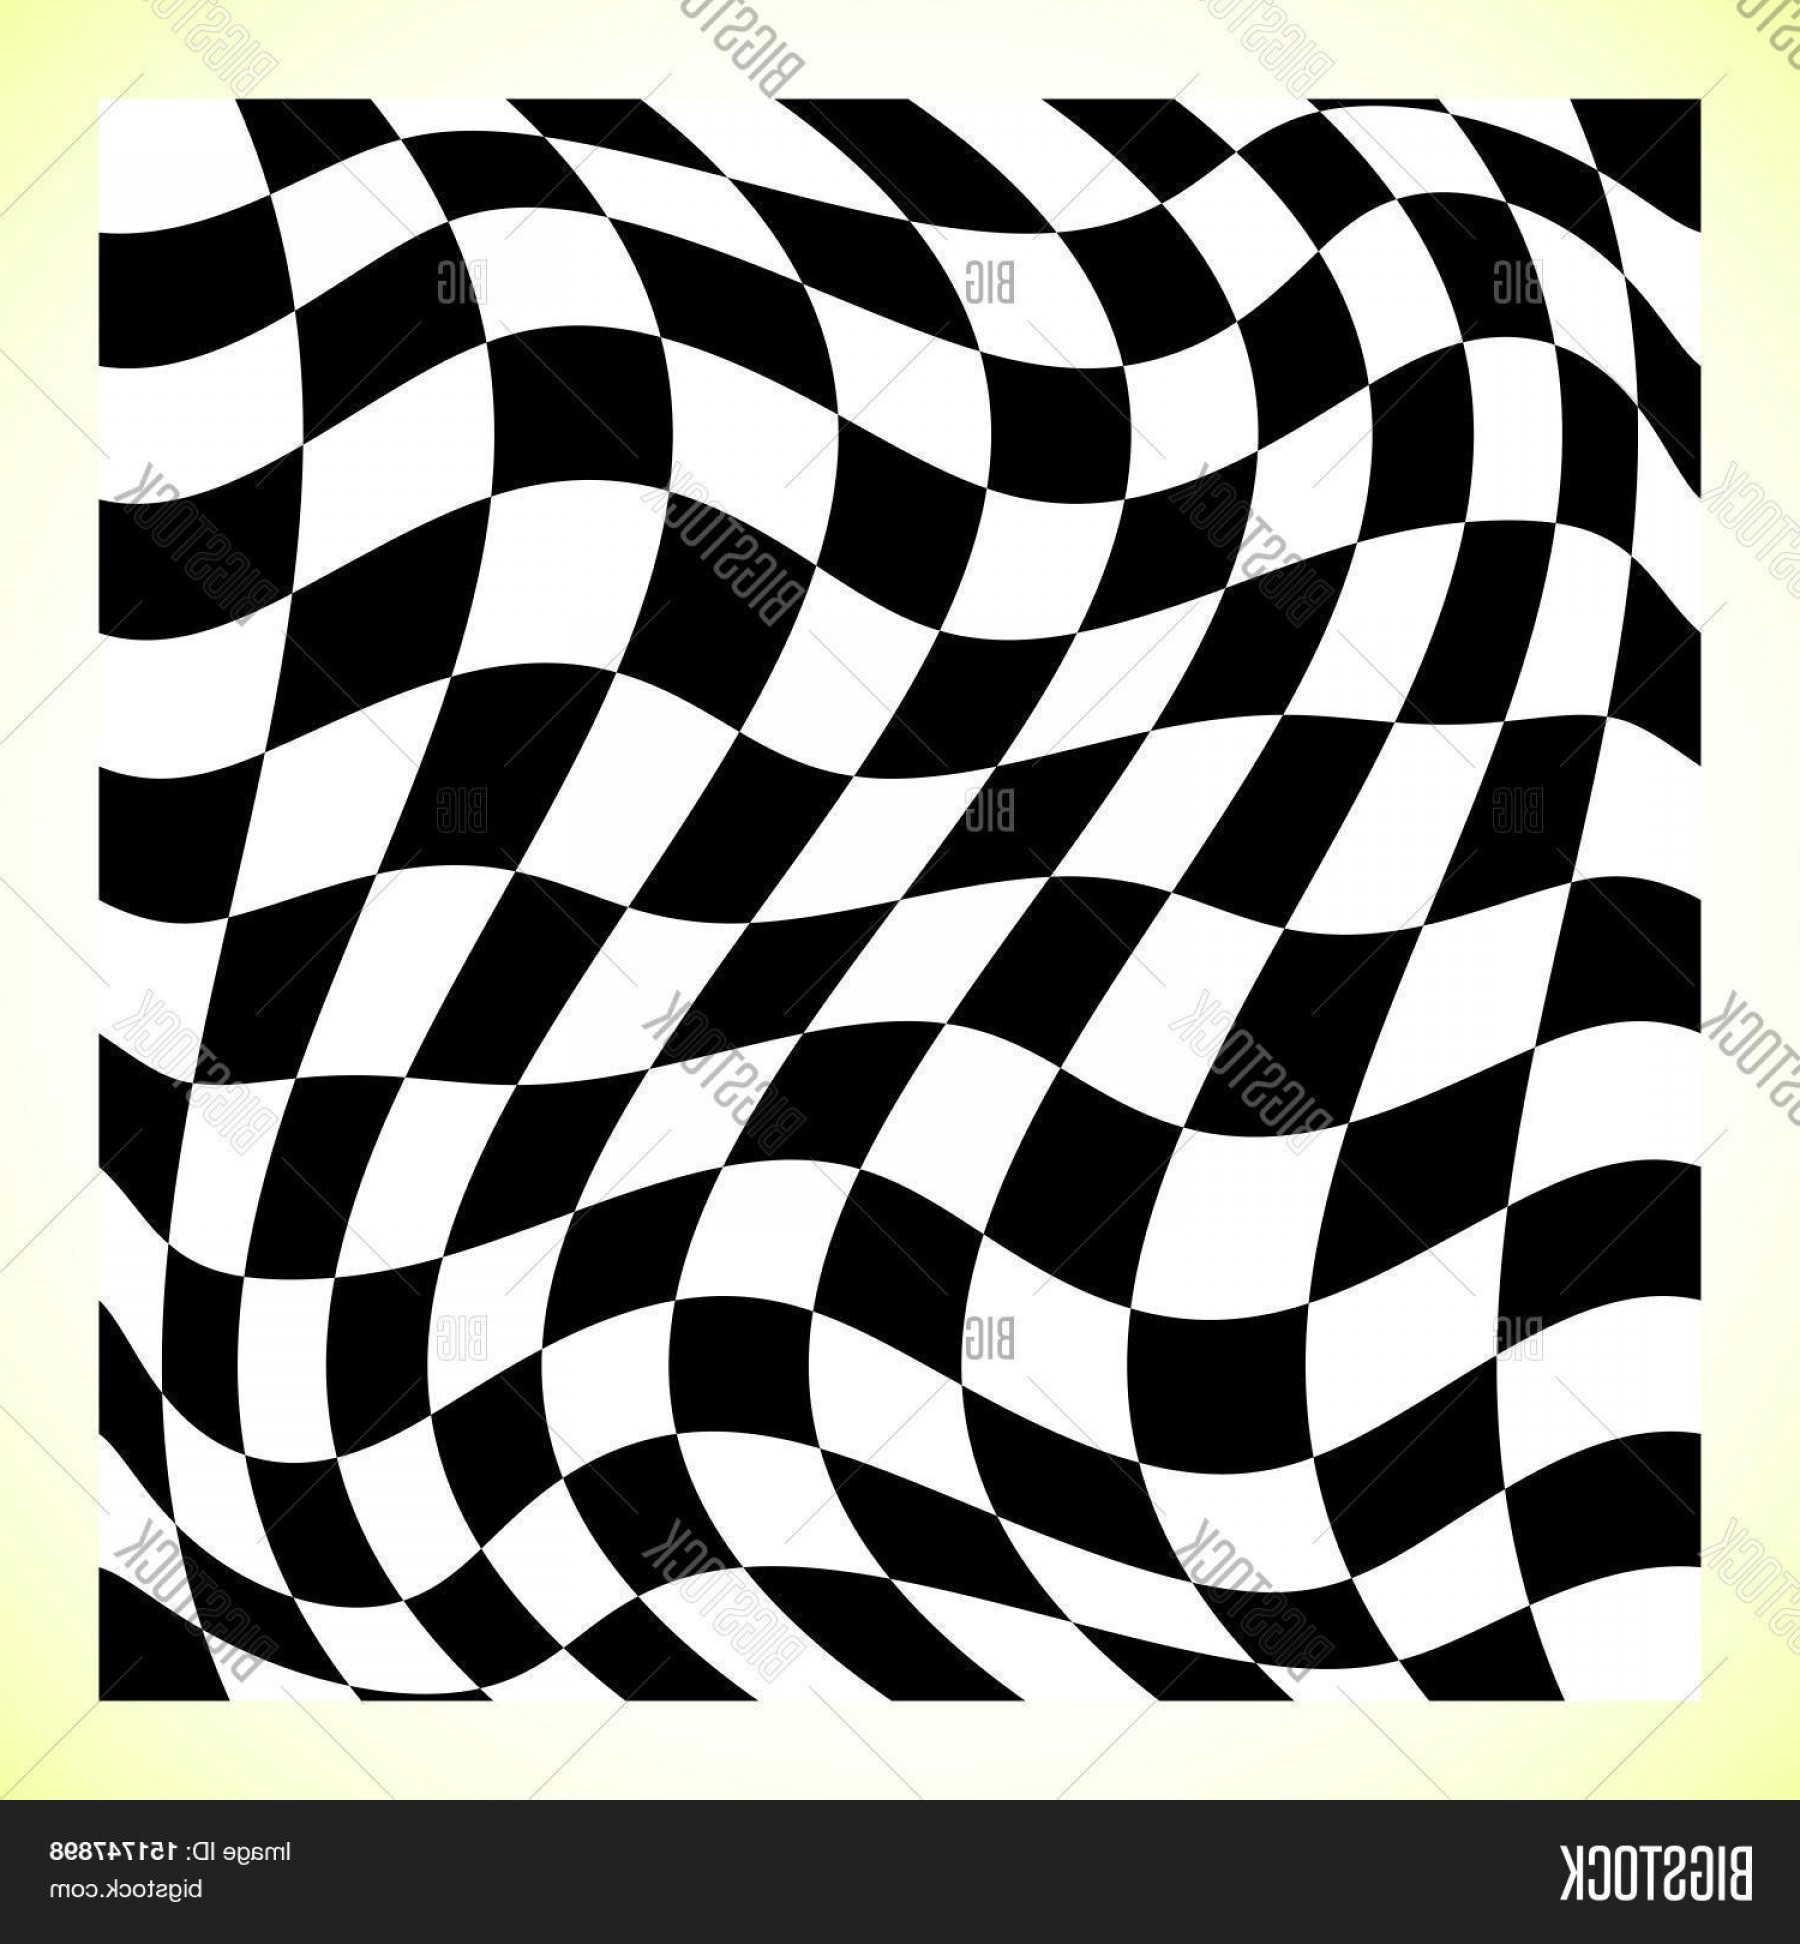 1800x1944 Stock Vector Checkered Pattern Chess Boardc Checker Board With